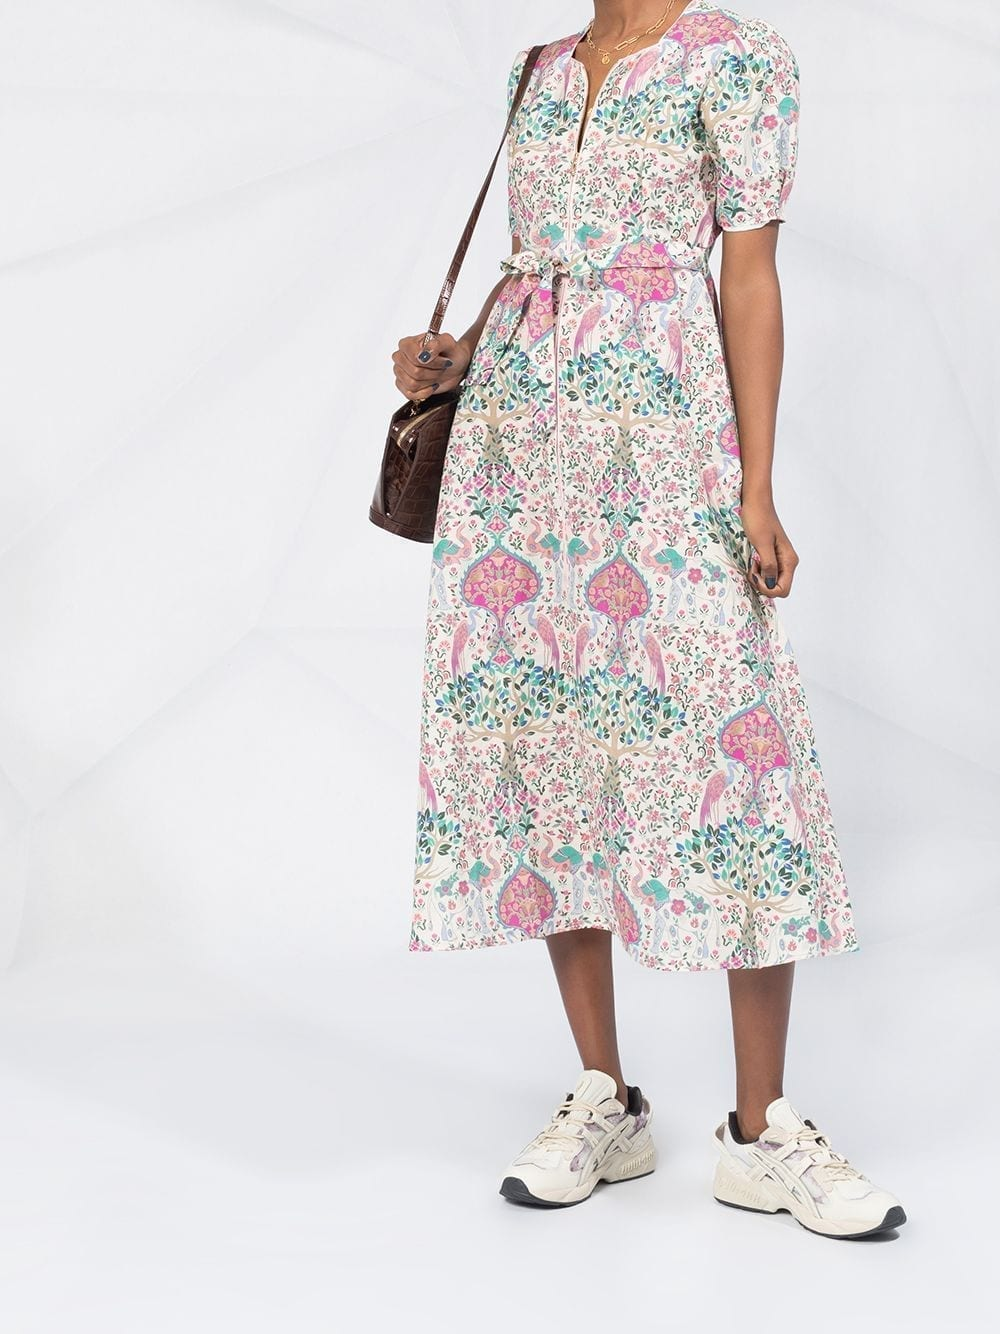 SANDRO PARIS Irya Floral Print Dress